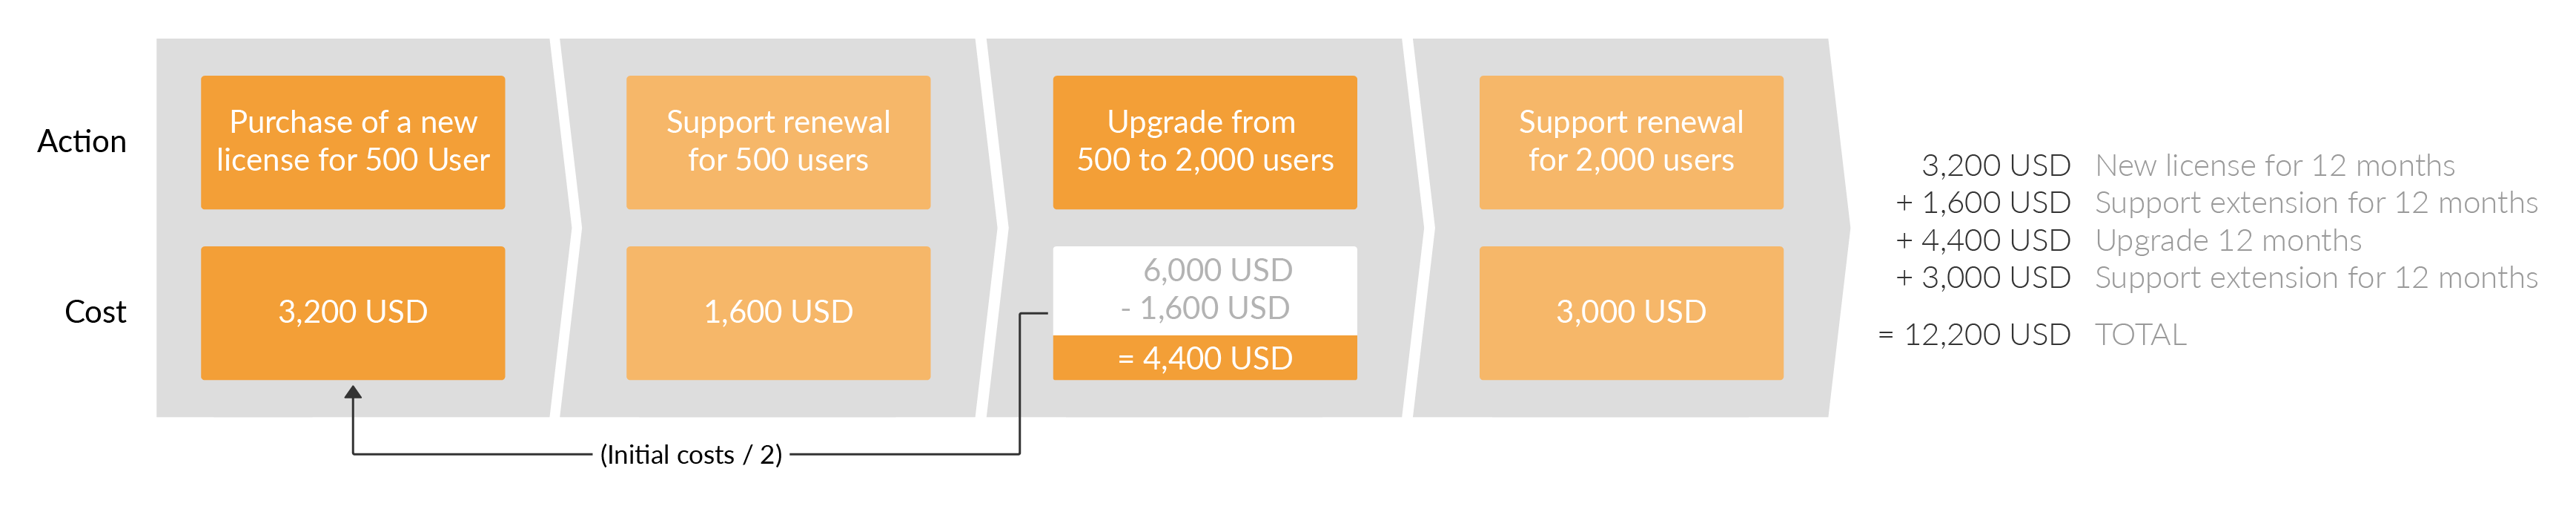 In the following years, the cost of extending support is half the cost of a new license.